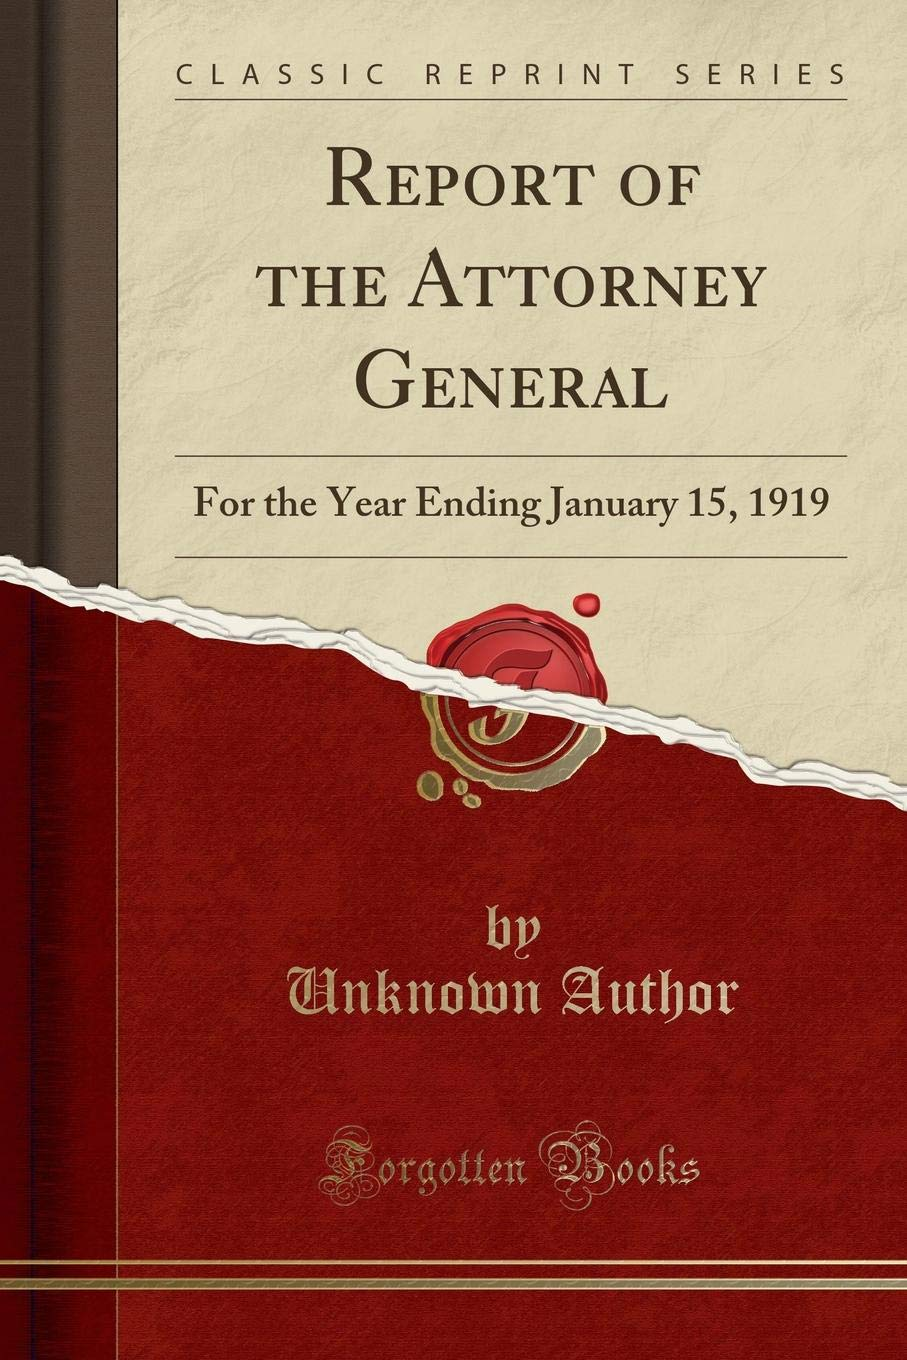 Report of the Attorney General: For the Year Ending January 15, 1919 (Classic Reprint) PDF